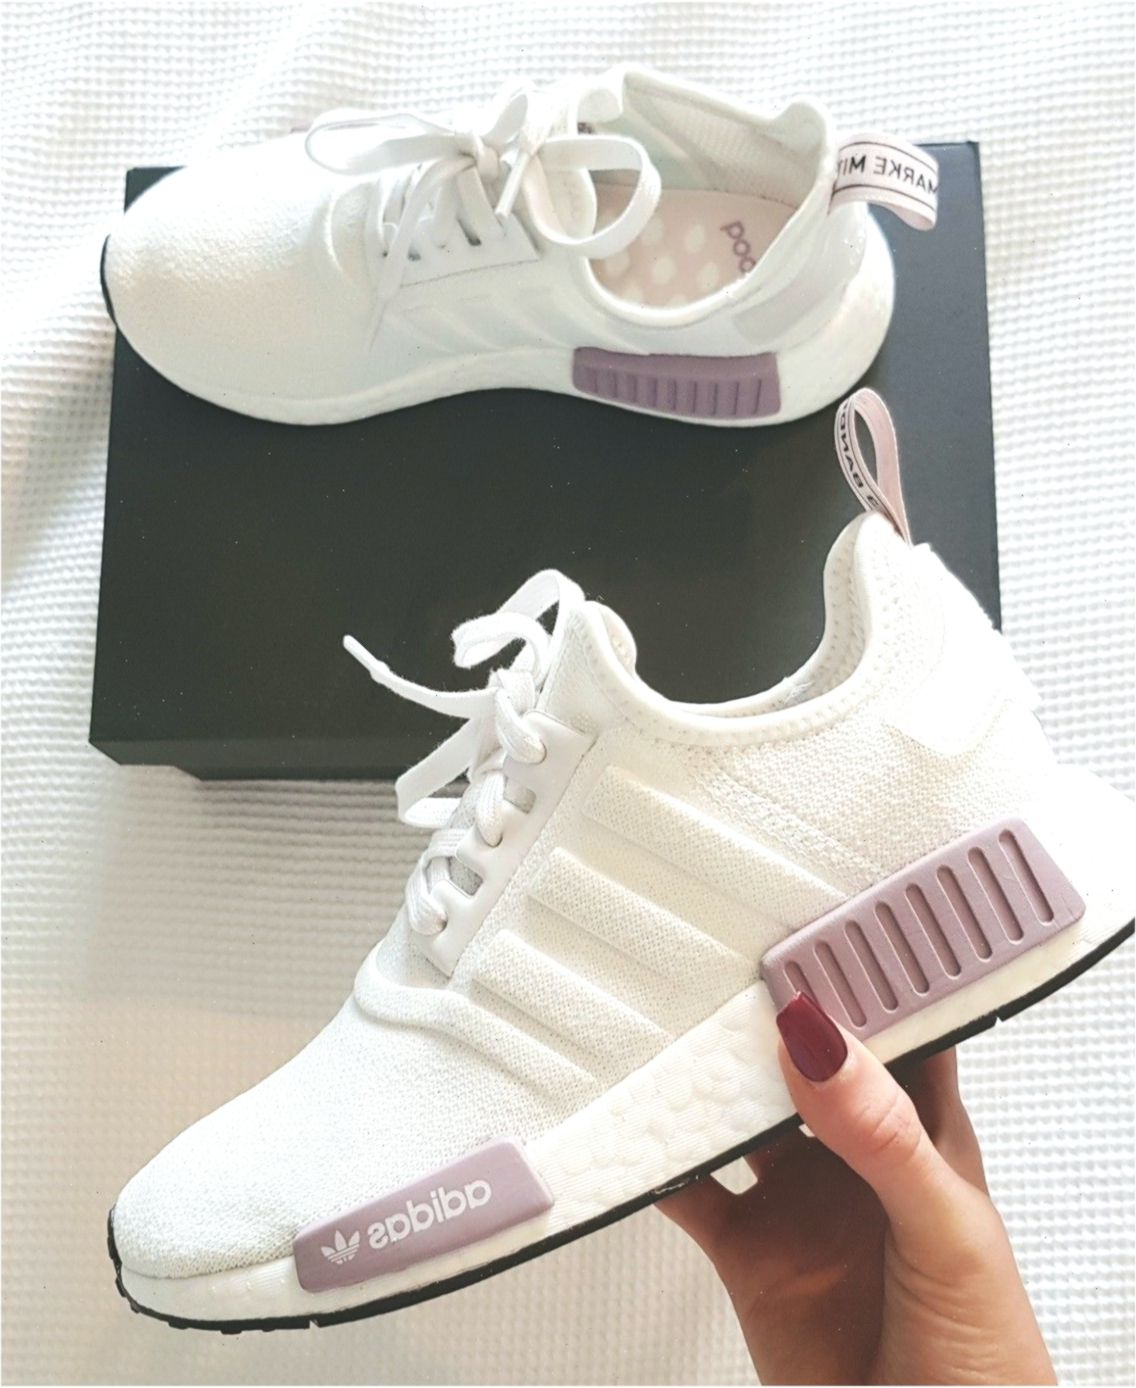 Pin by Amelia Domenici on FASHION in 2020 | Pink adidas